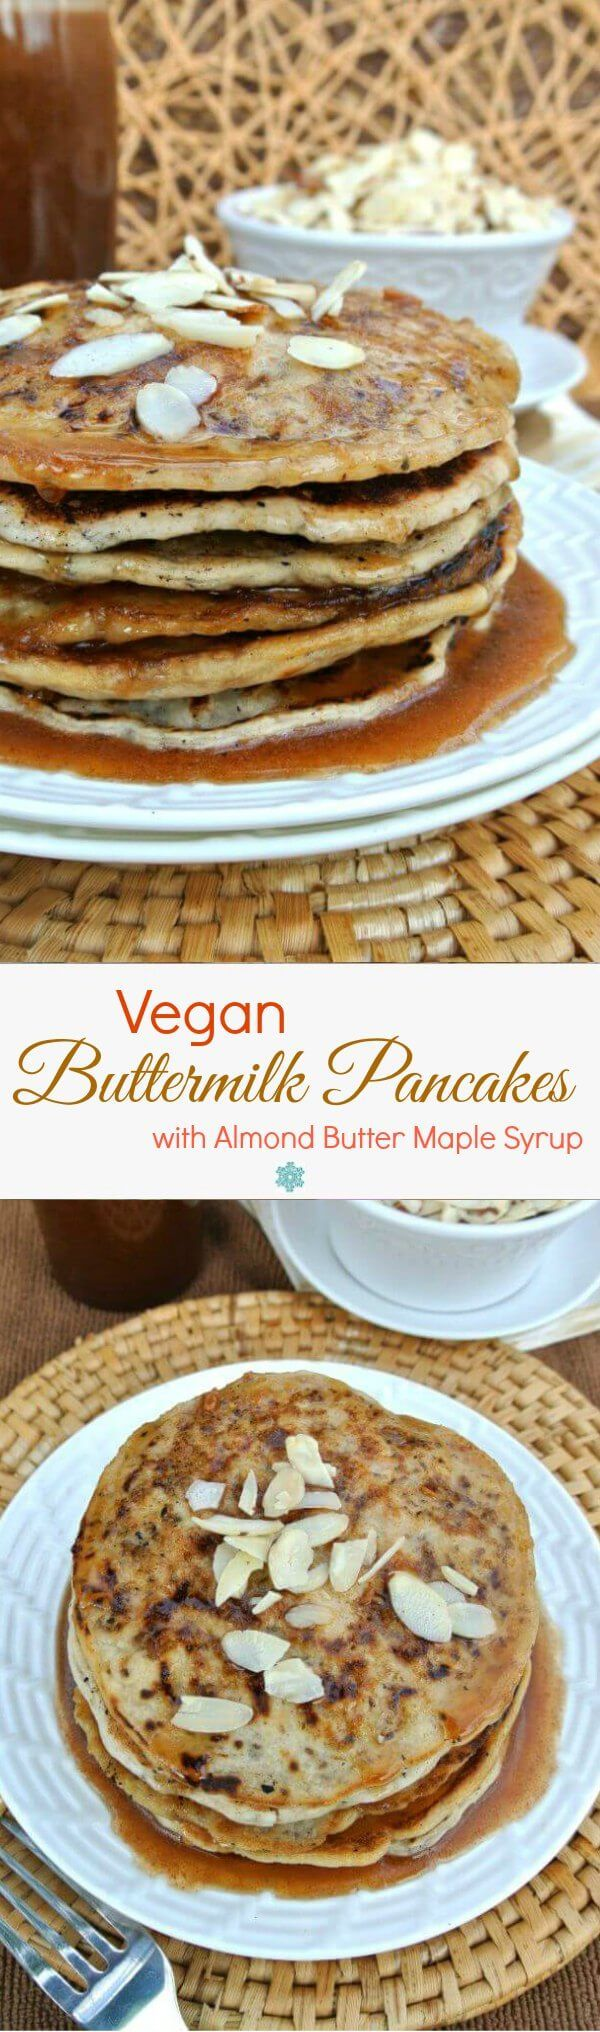 Vegan Buttermilk Pancakes with Almond Butter Maple Syrup are to-die-for and simple to make. Have as a special treat on the weekends or serve at your holiday brunch. @lovemysilk #DoPlants  ~ http://veganinthefreezer.com